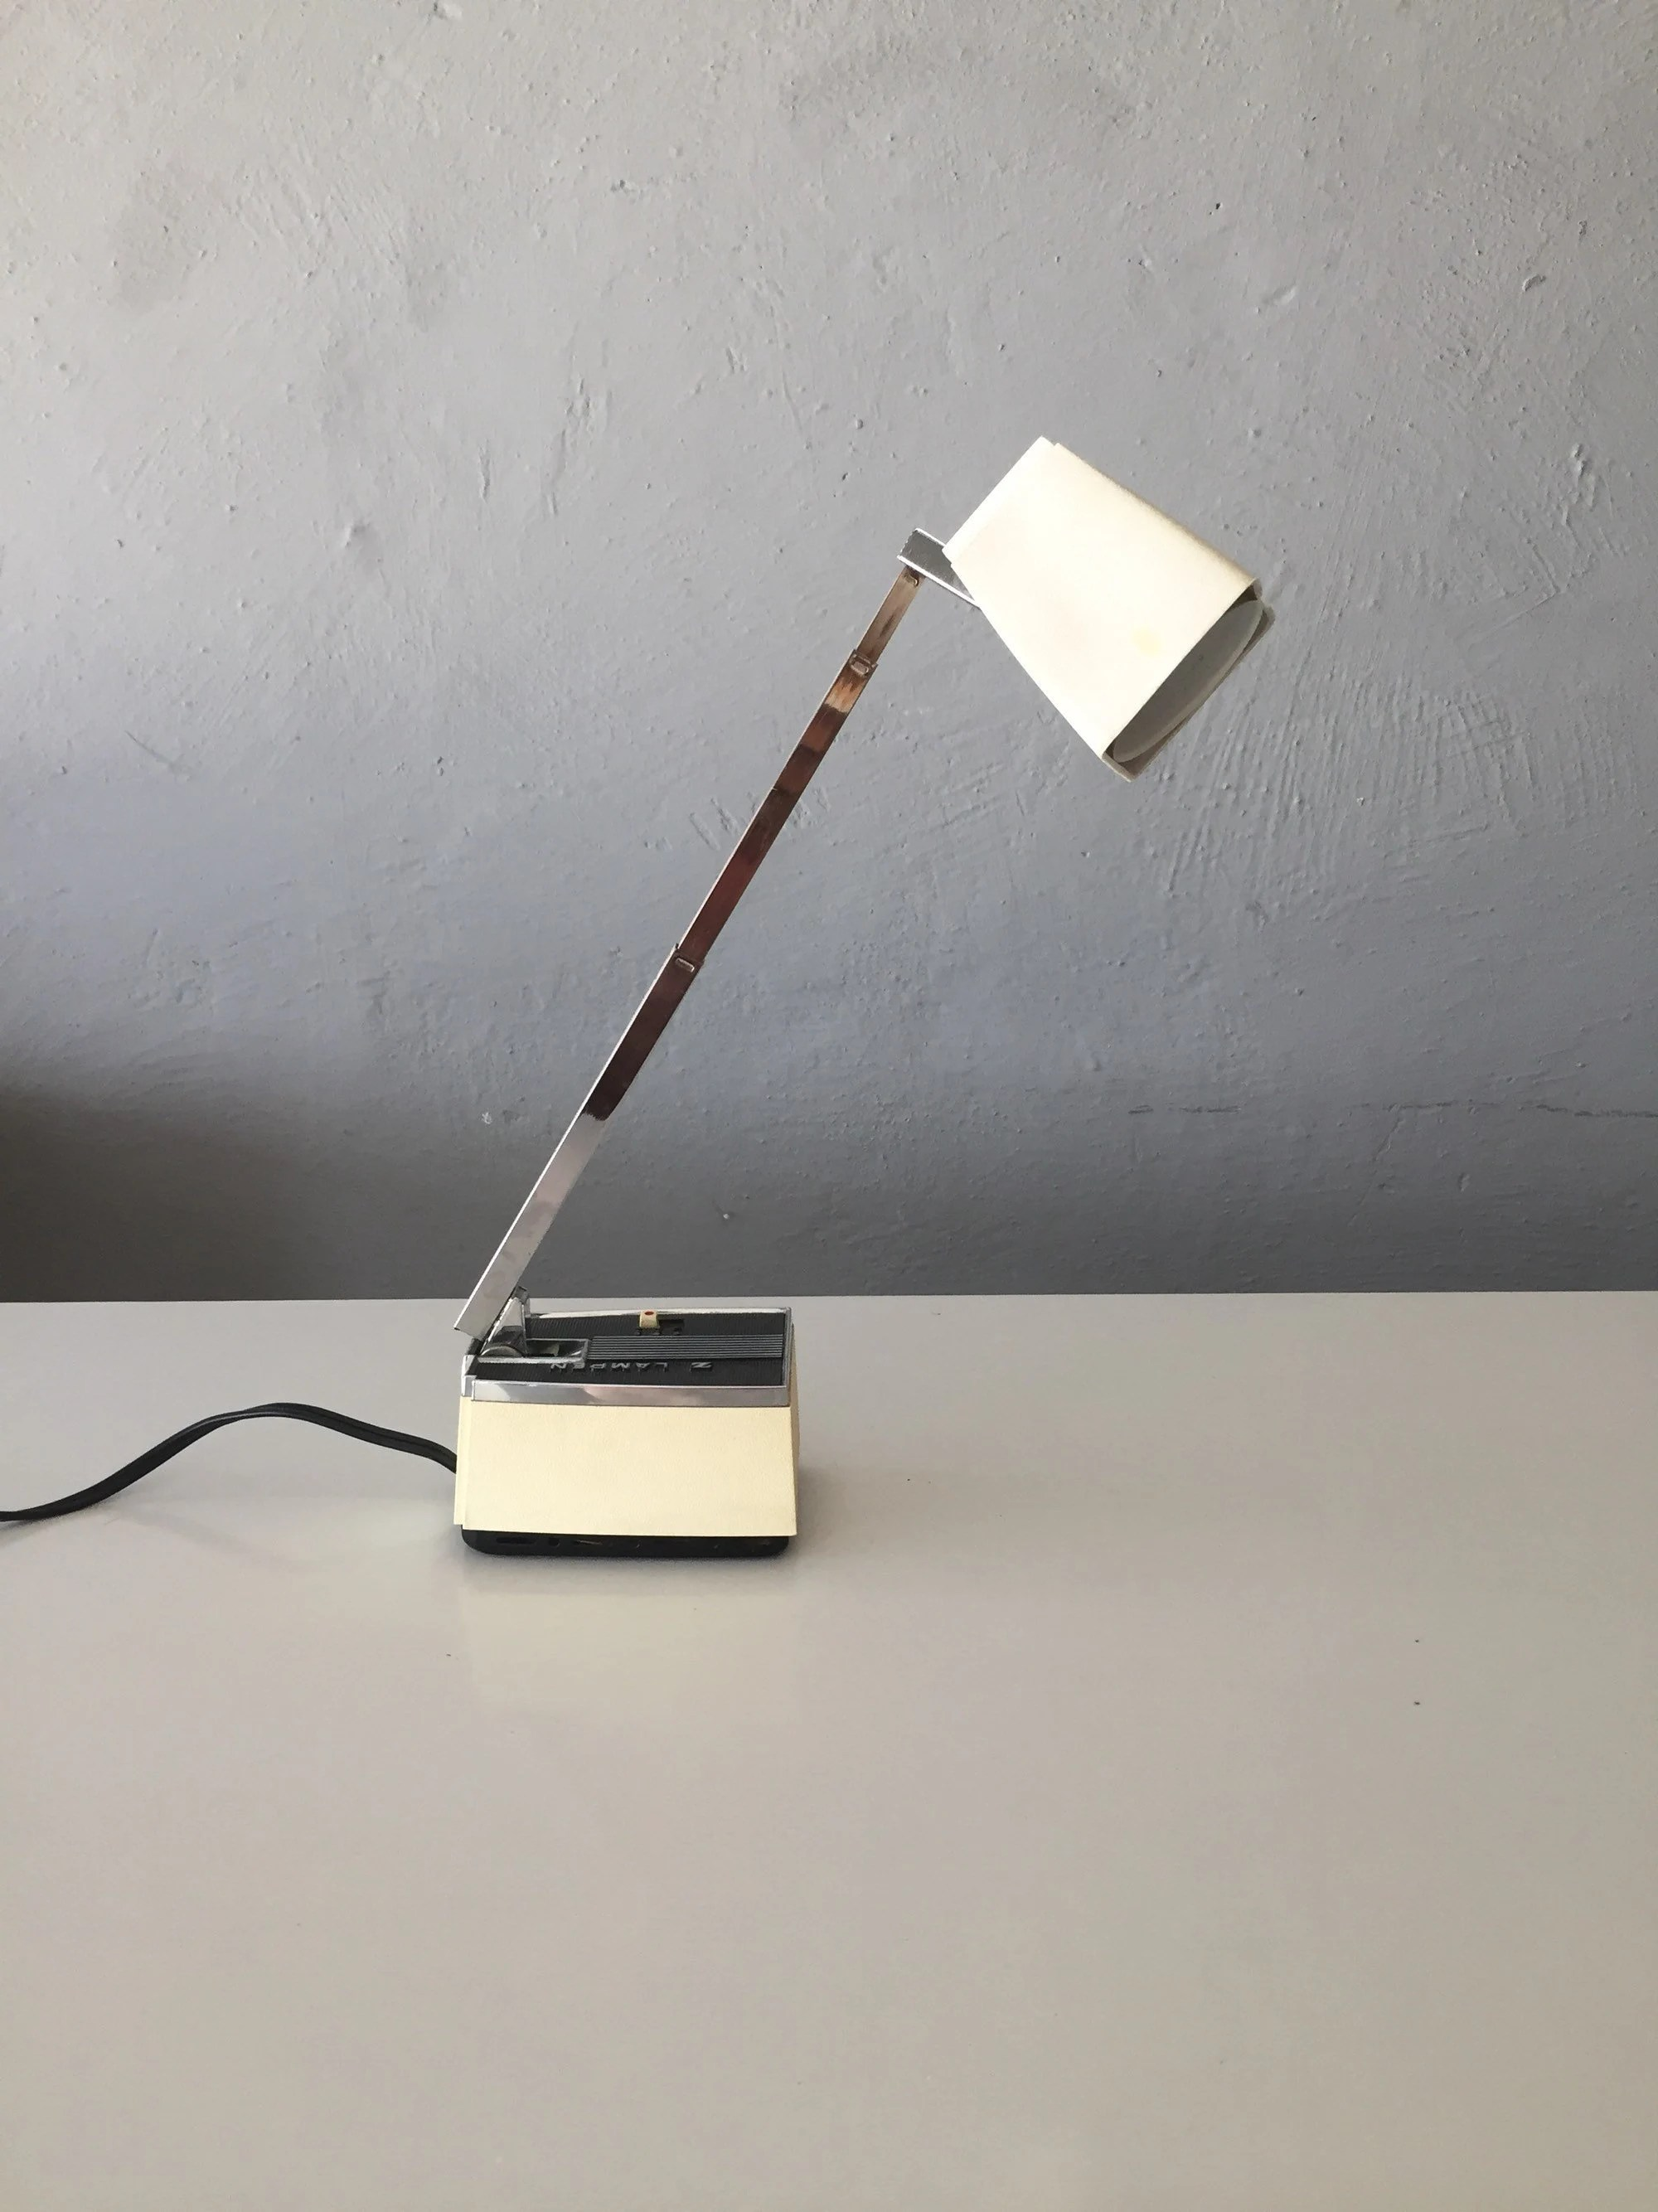 Lighting Lampen Z Lampen Desk Lamp Retro White And Black Table Lamp Adjustable Neck Available To Hang On Wall 60s Germany